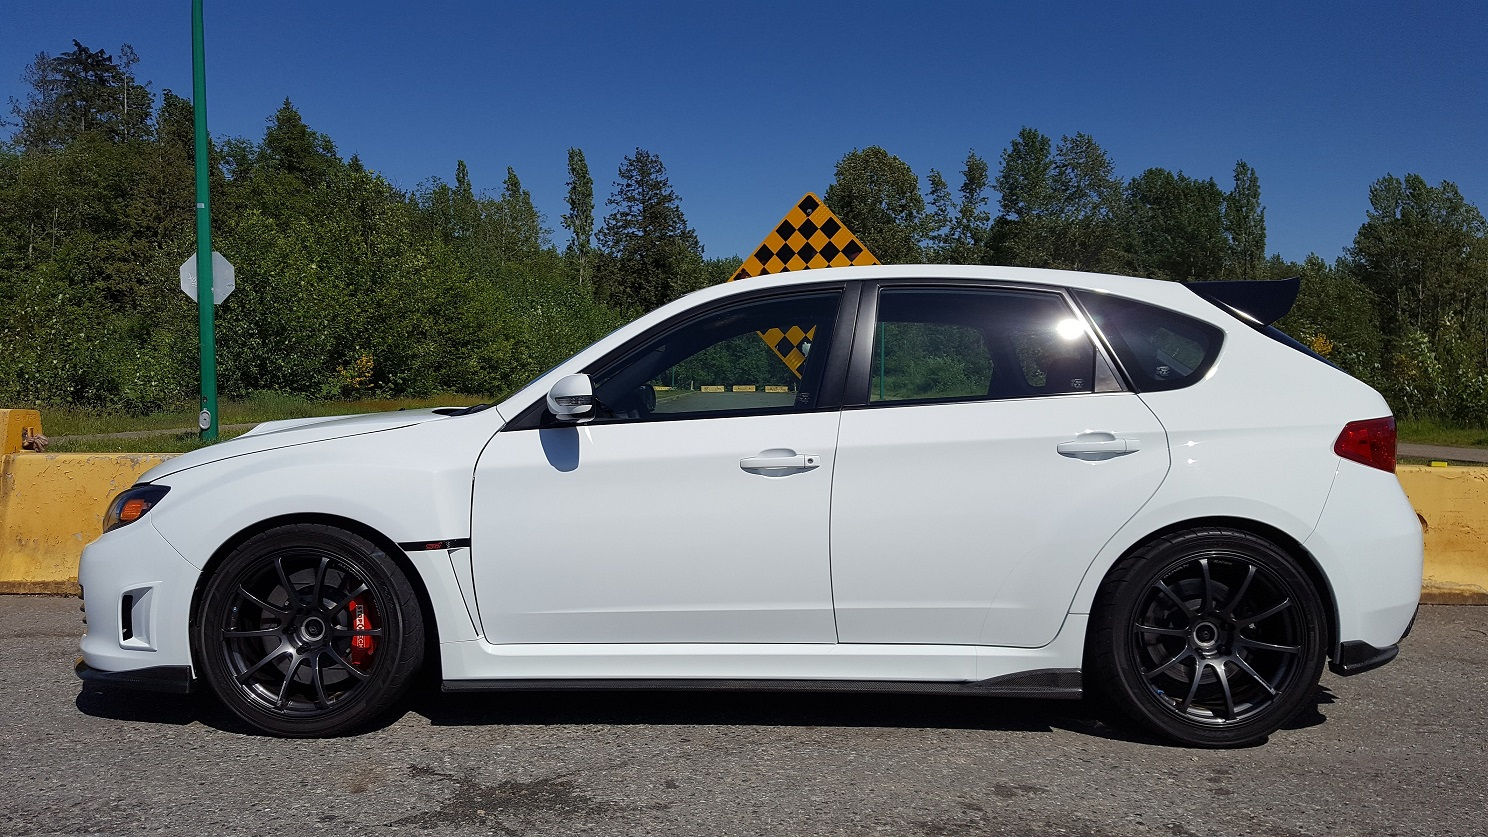 2008 STI 24,500 miles BUILT ,000 USD-thumb-jpg